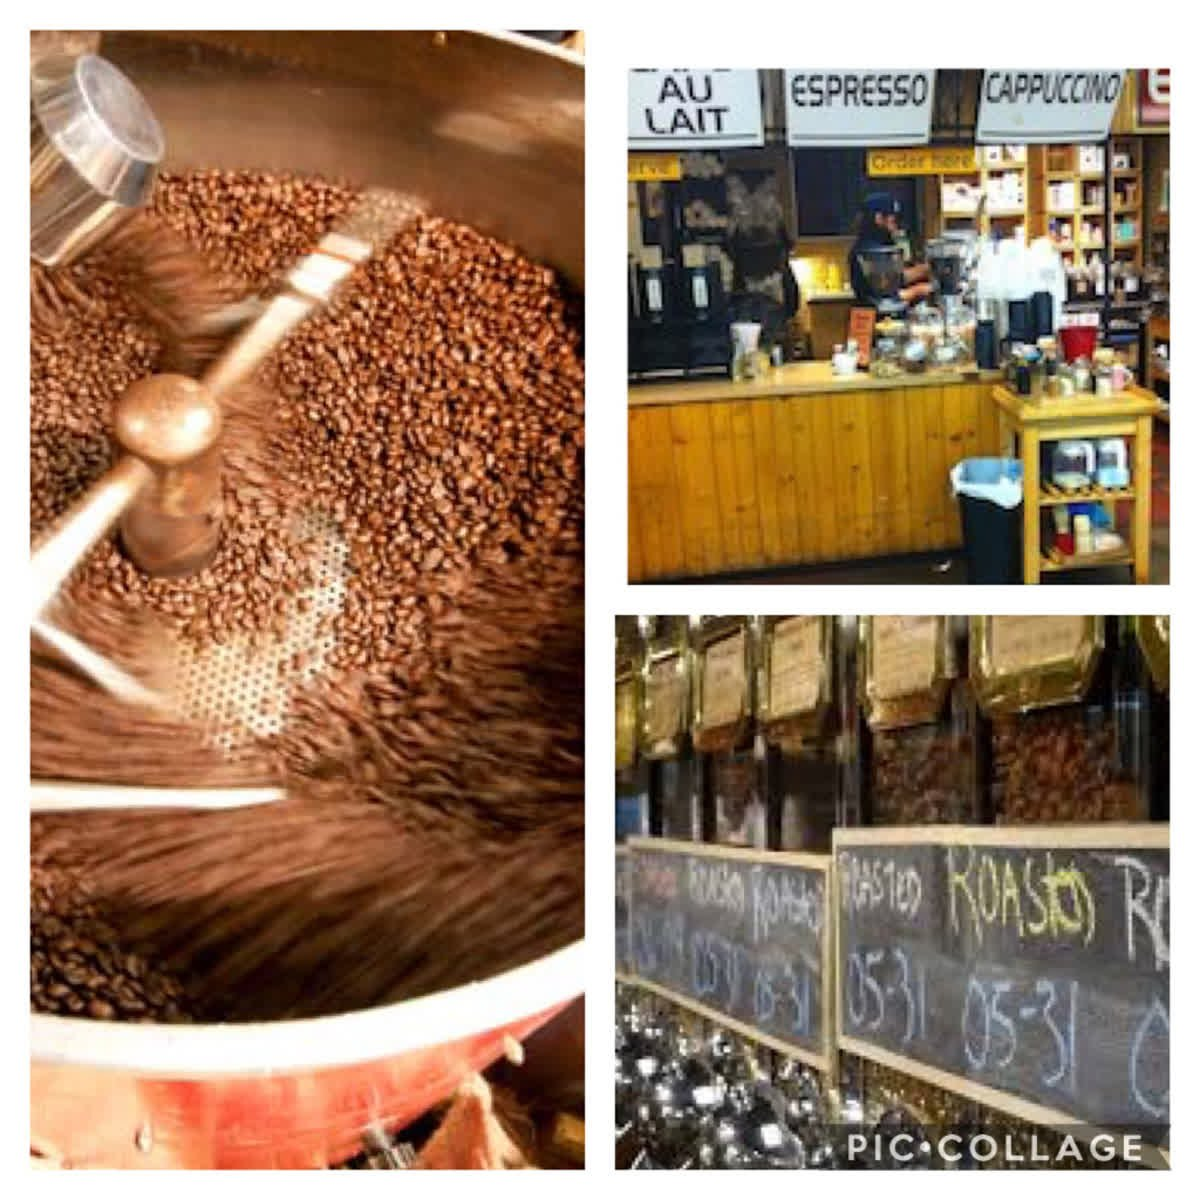 #SAME  Wishing you courage, strength -- and LOTS of coffee from @StLawrenceMkt #EverydayGourmet -- as you go back to work and school today! ☕☕  #backtoschool #backtowork #foodtoursto #ChefScottsTO